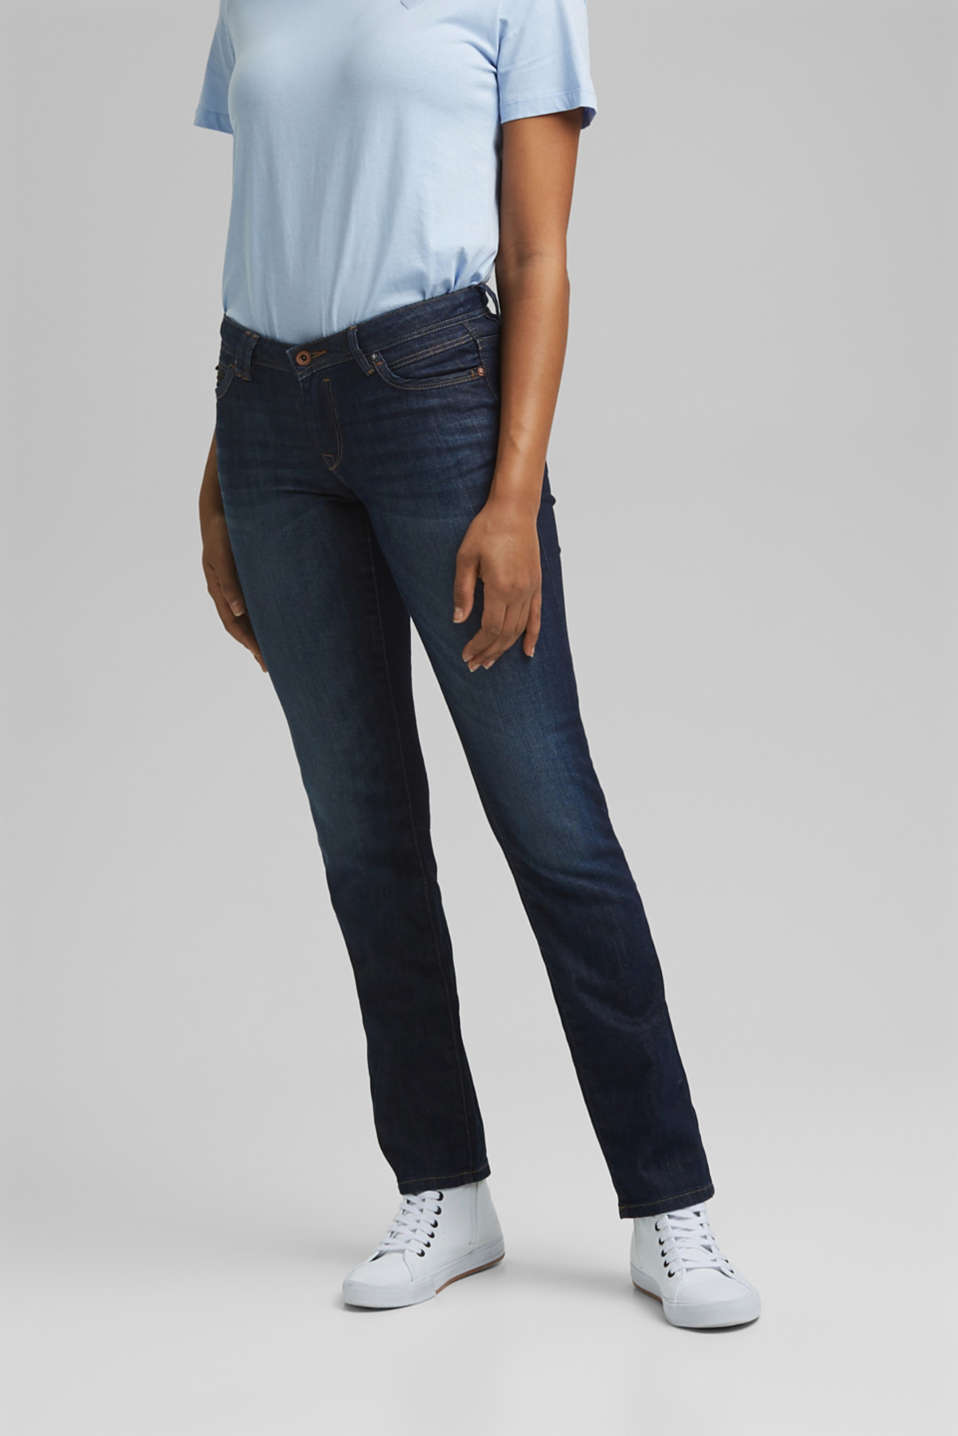 edc - Jeans with organic cotton